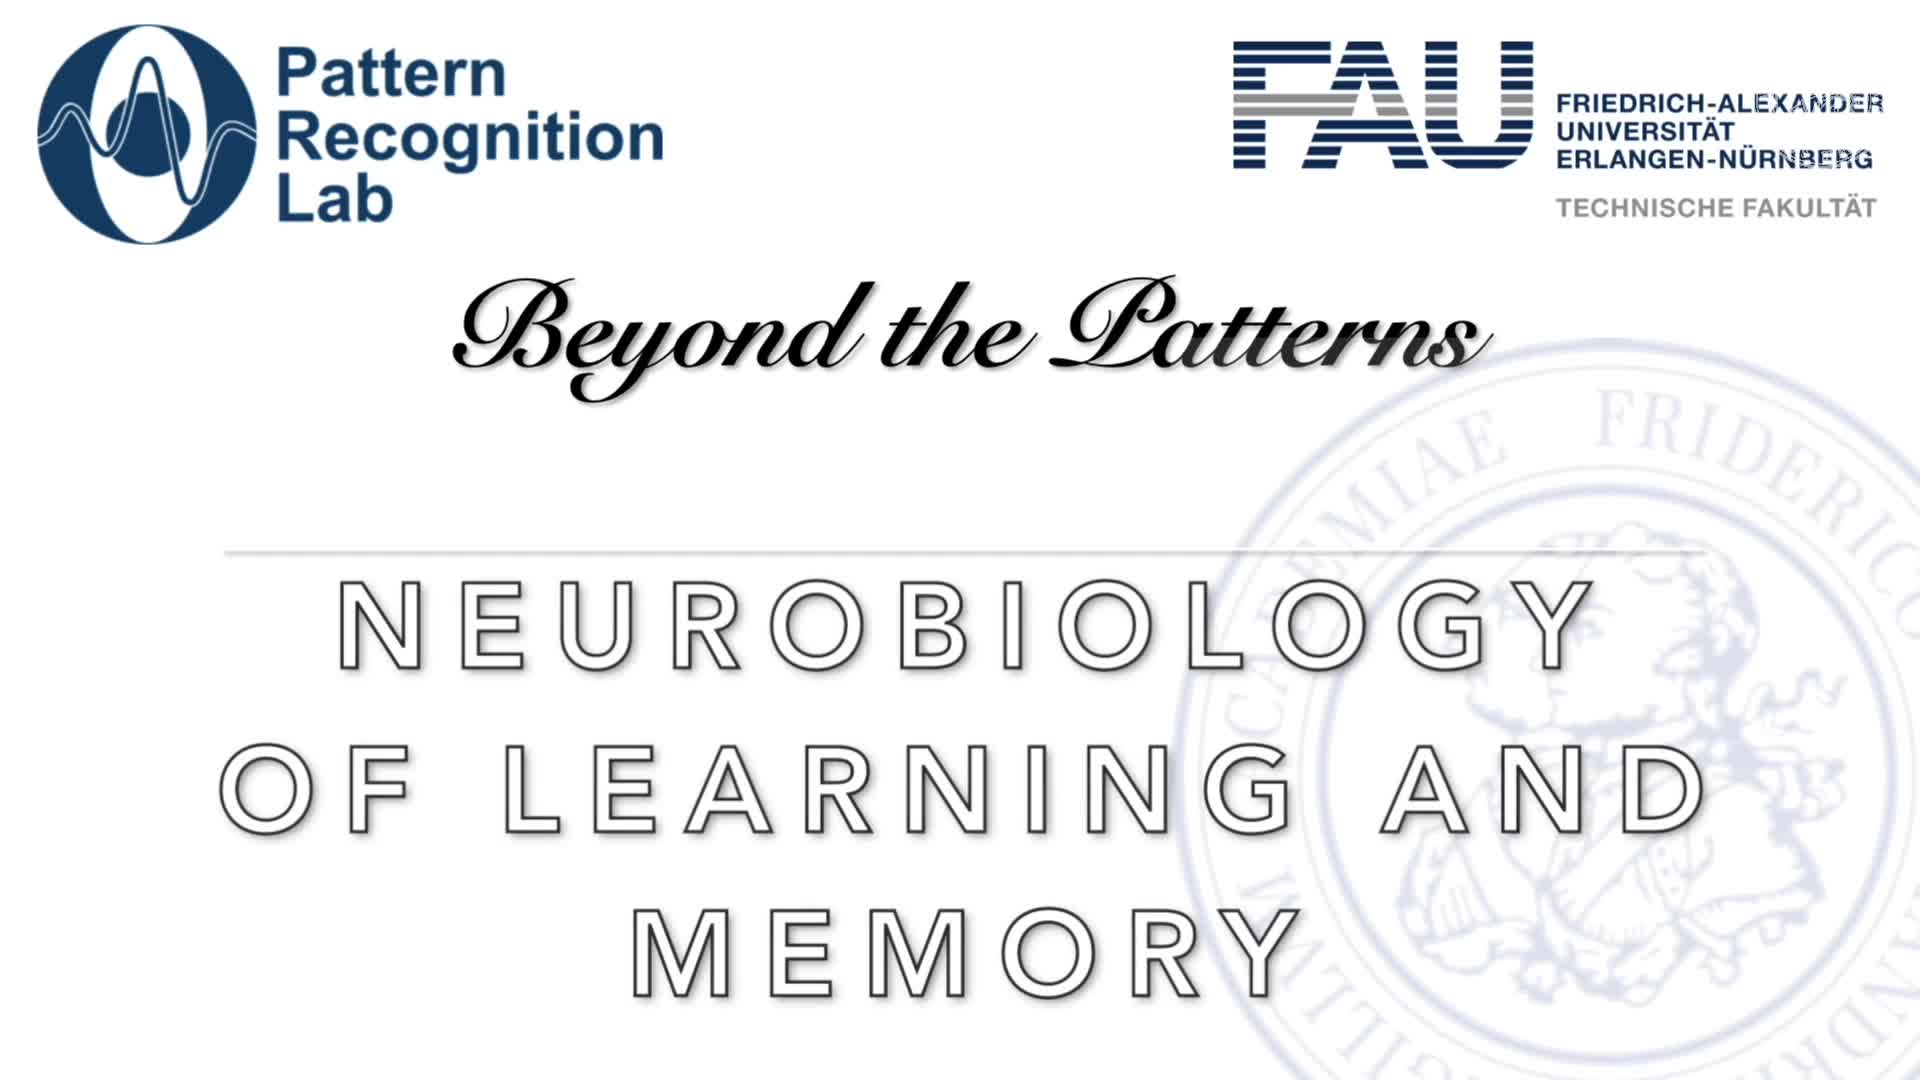 Beyond the Patterns - Neurobiology of Learning preview image